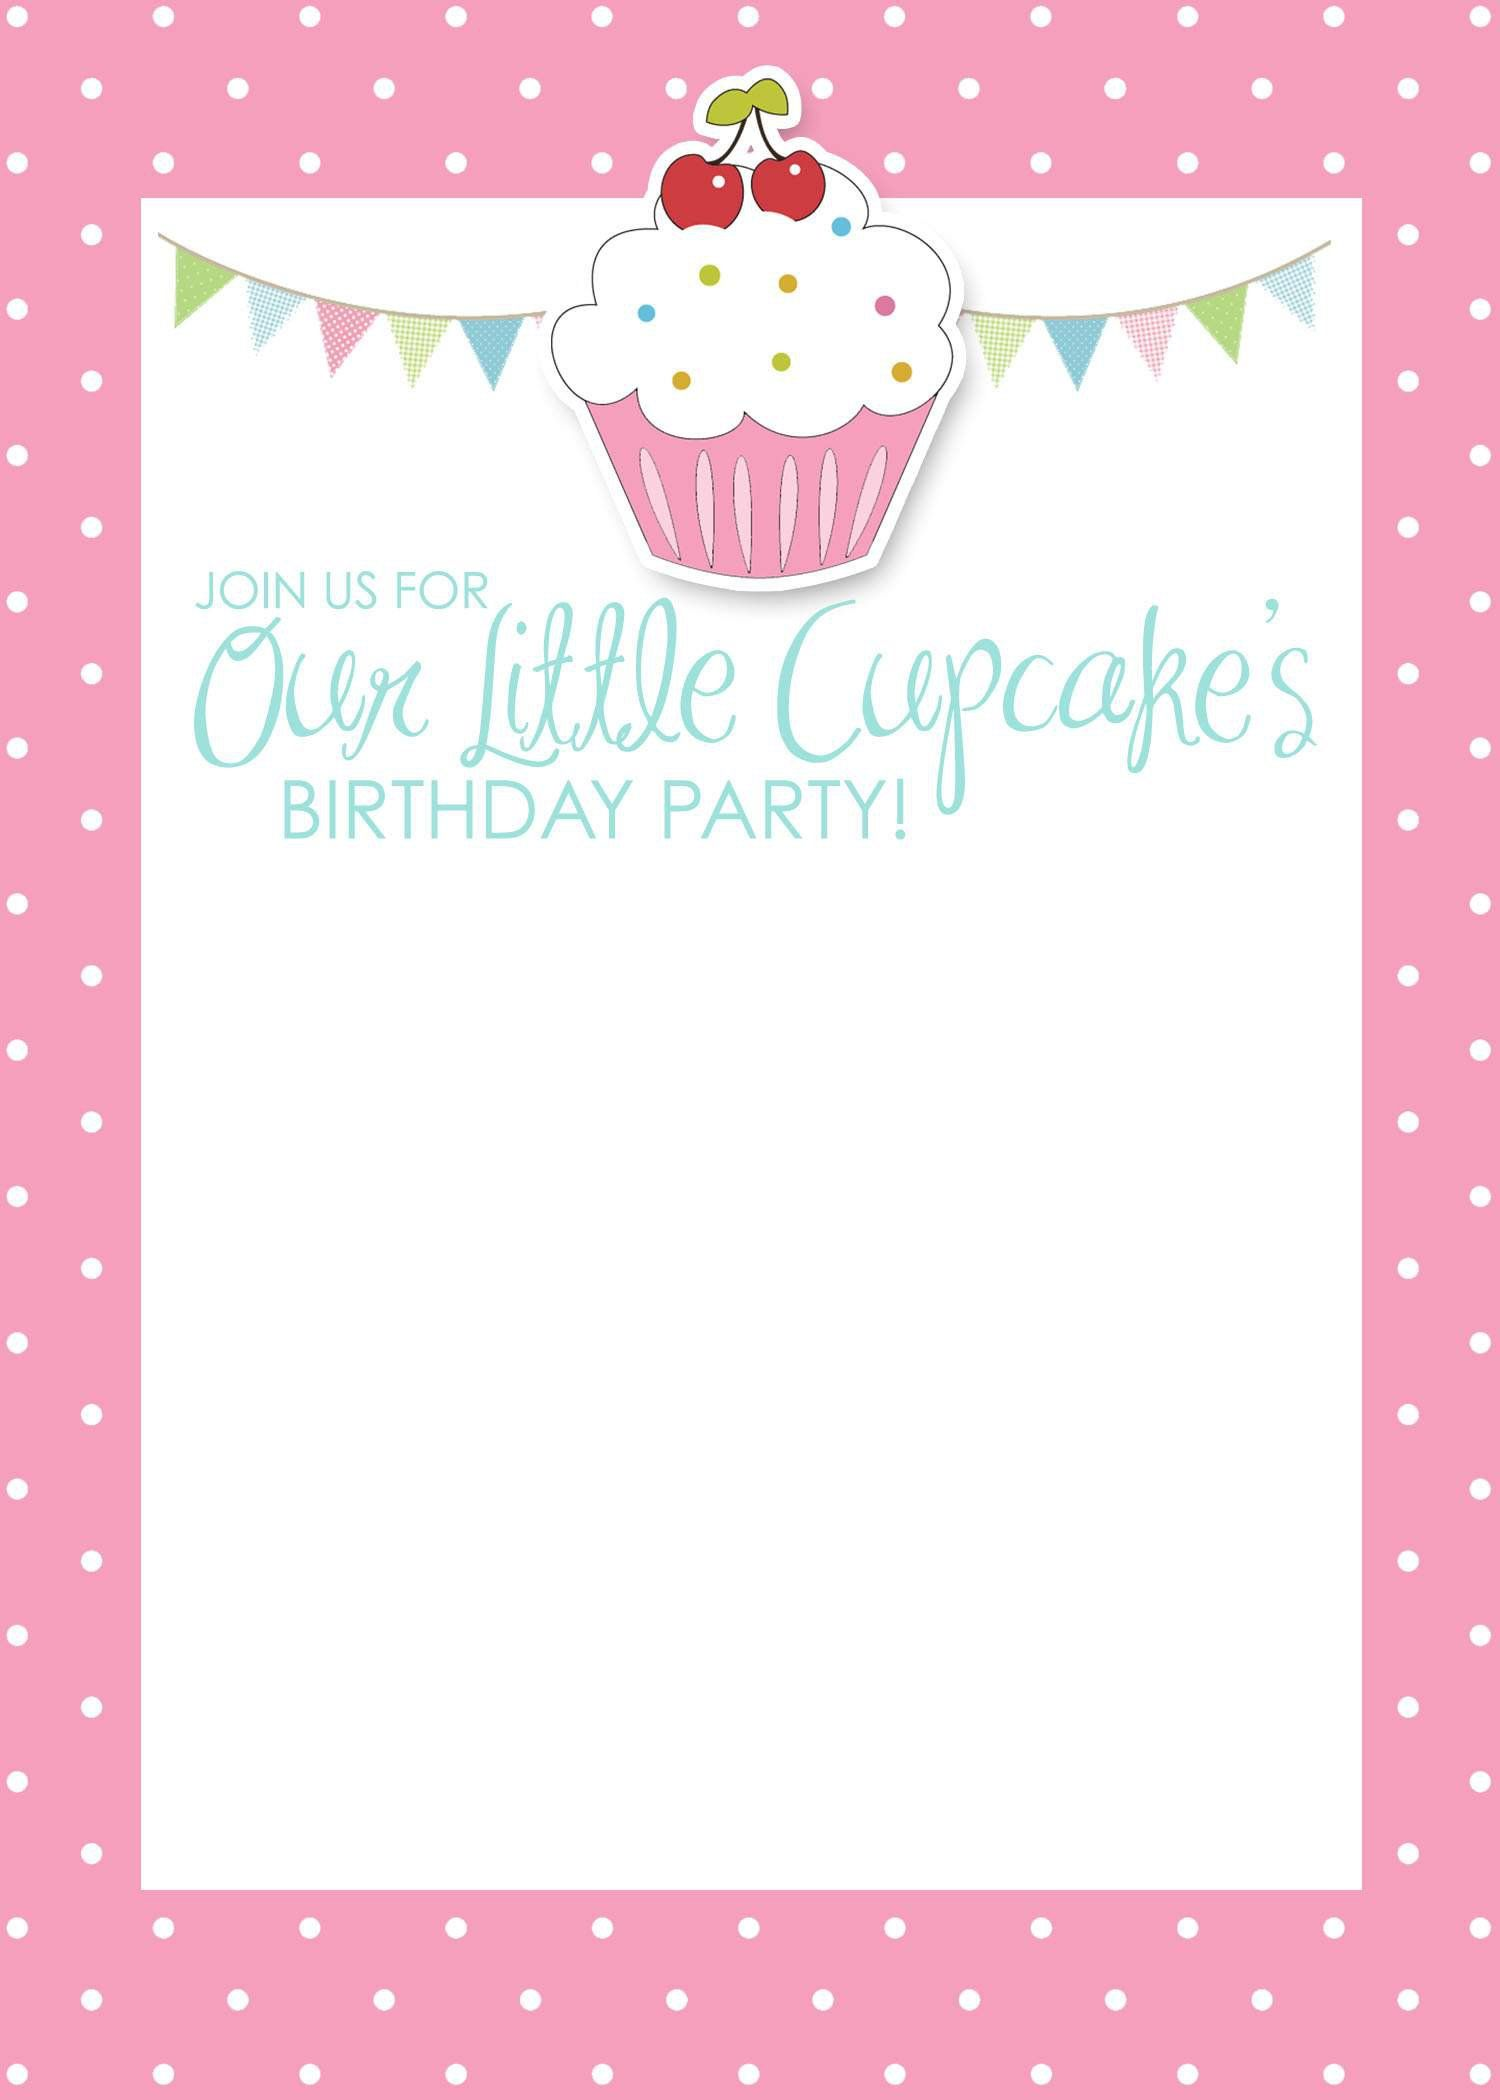 Birthday invitation card template free birthday invitations birthday invitation card template free stopboris Images